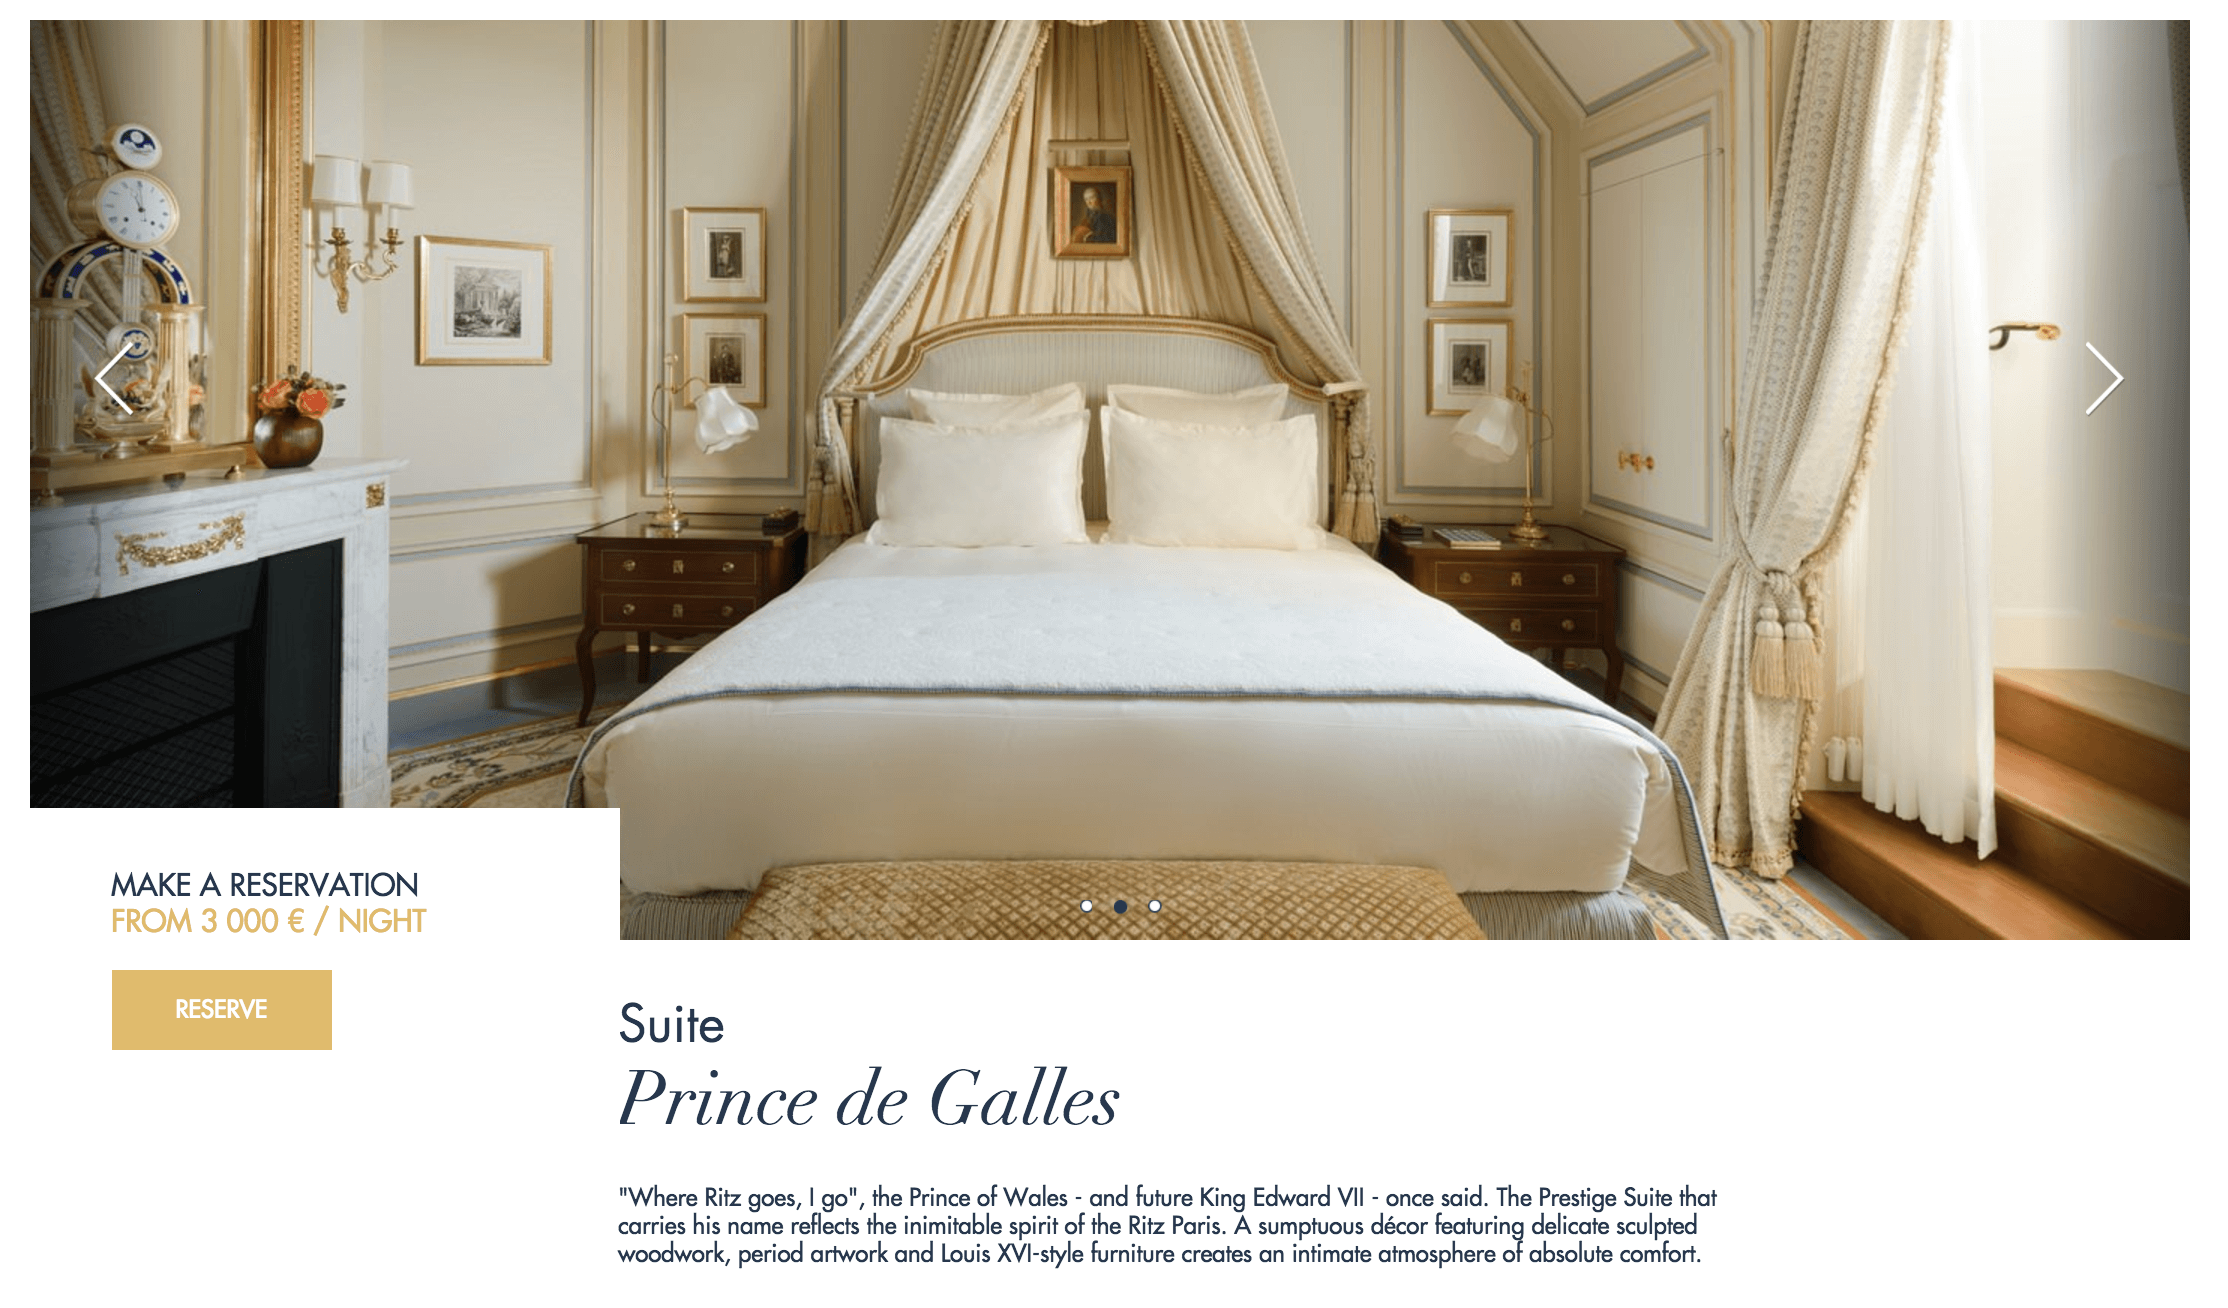 http://www.ritzparis.com/en-GB/luxury-hotel-paris/prestige-suites/prince-de-galles-suite